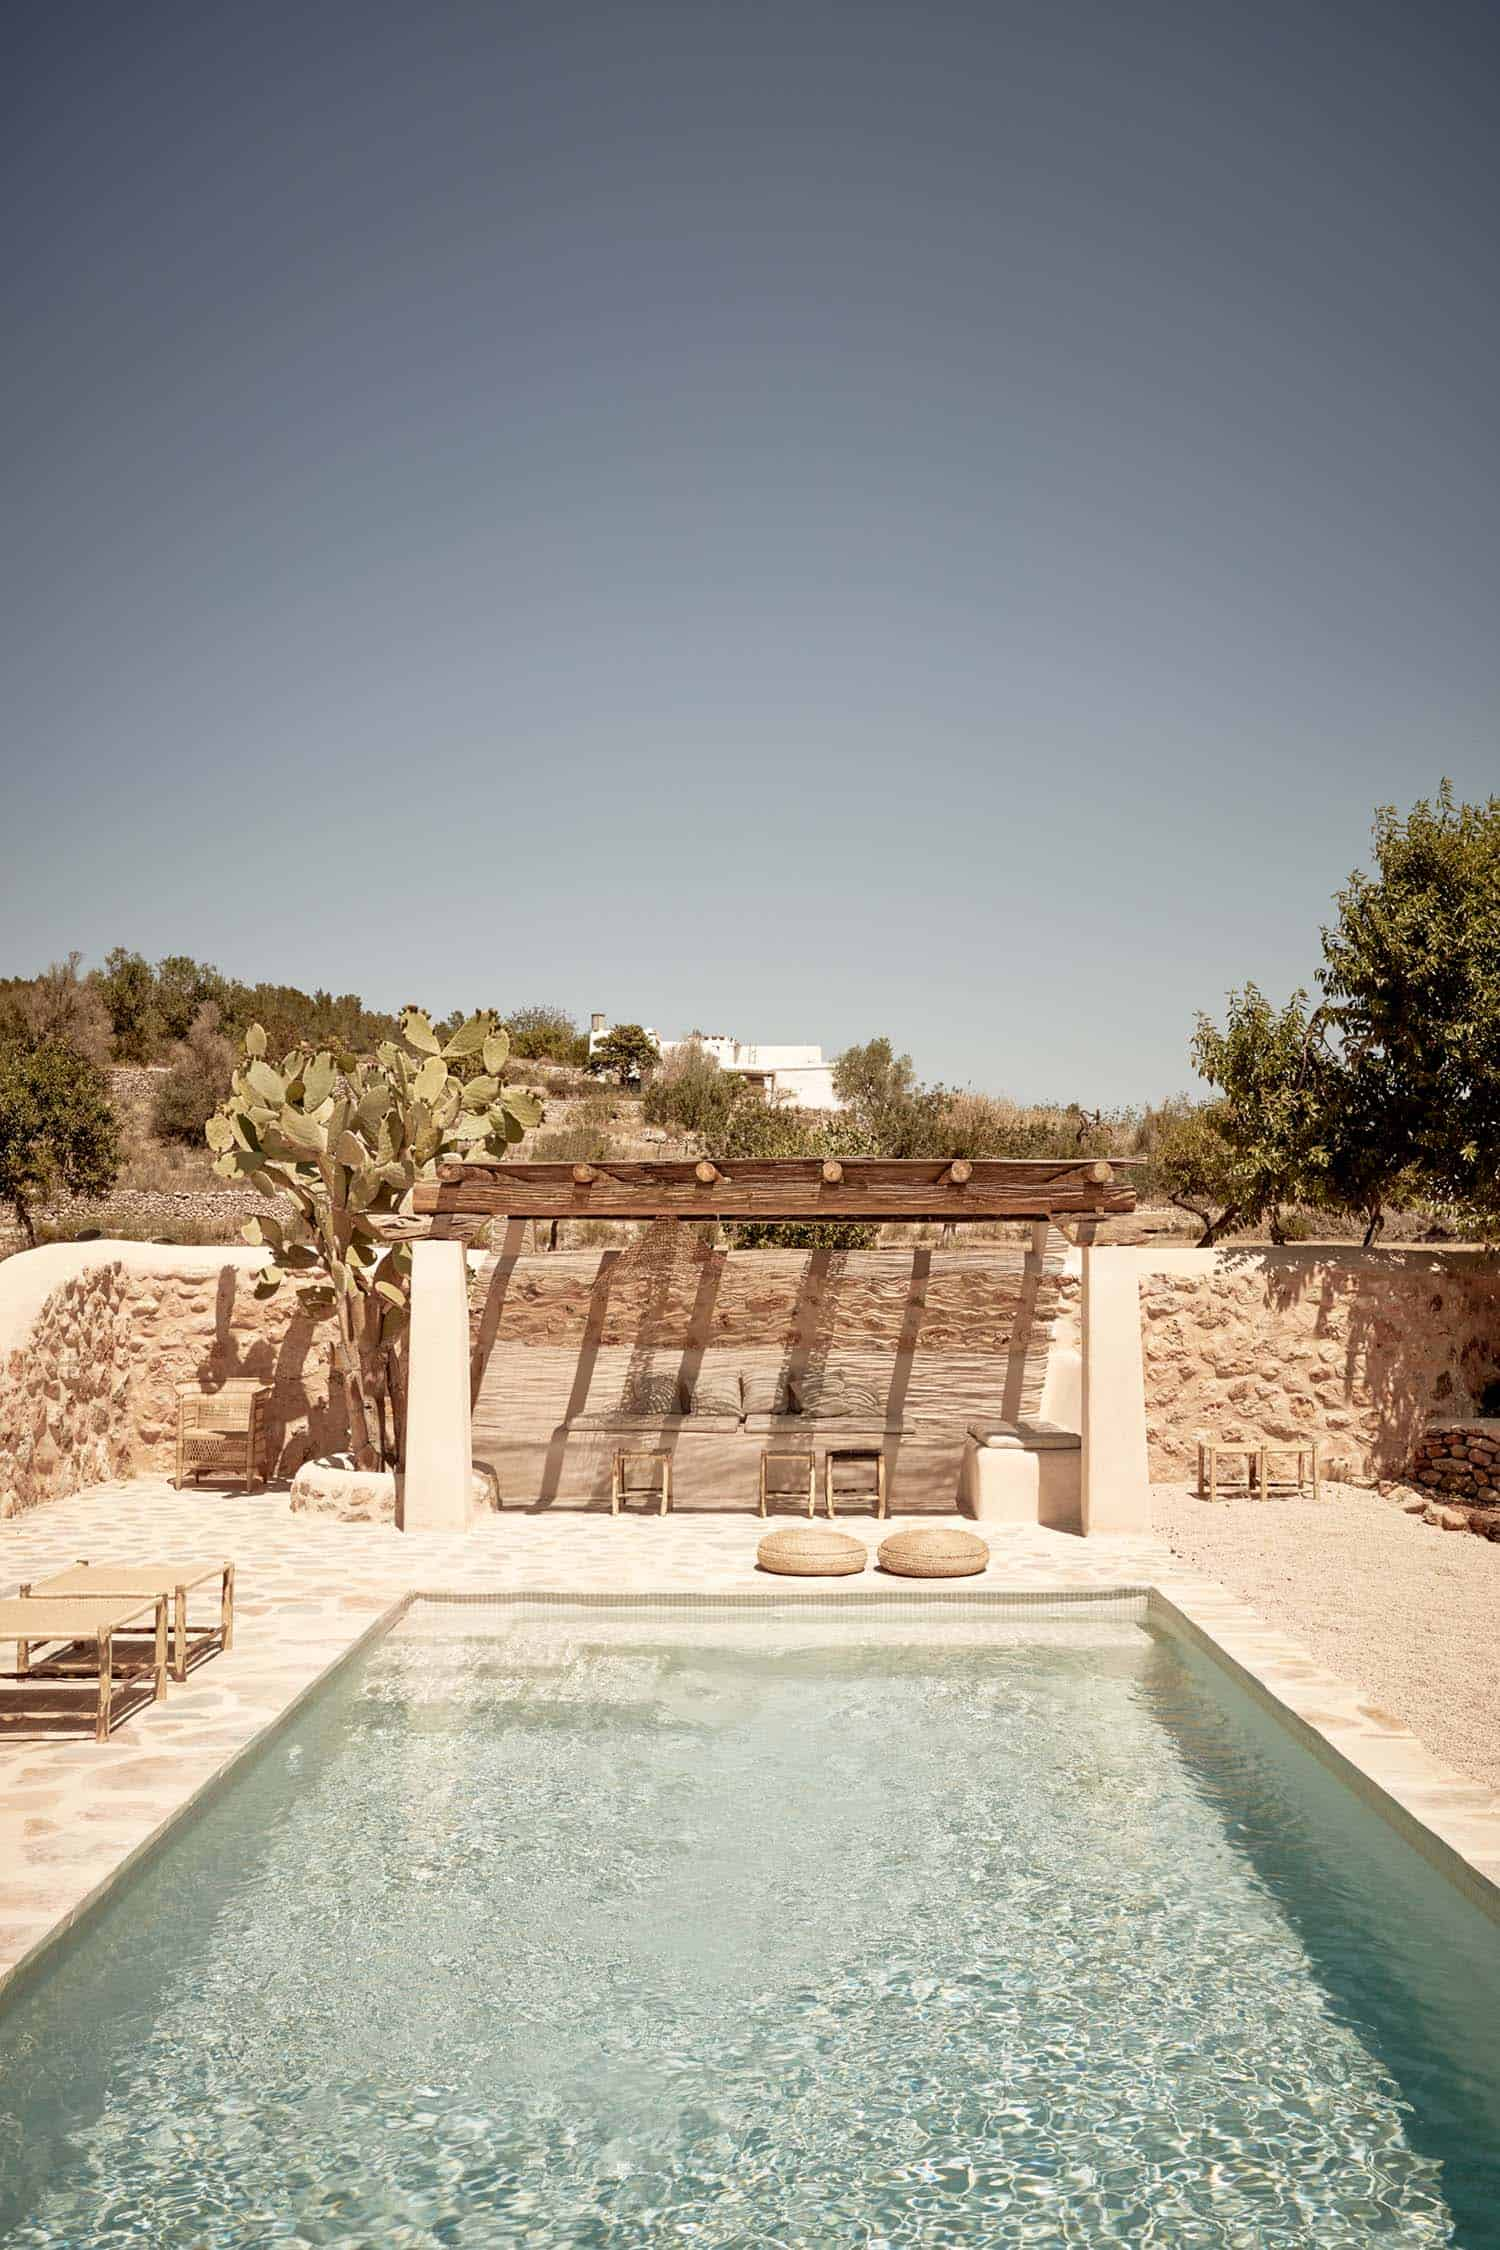 ibiza-holiday-house-annabell-kutucu-17-1-kindesign